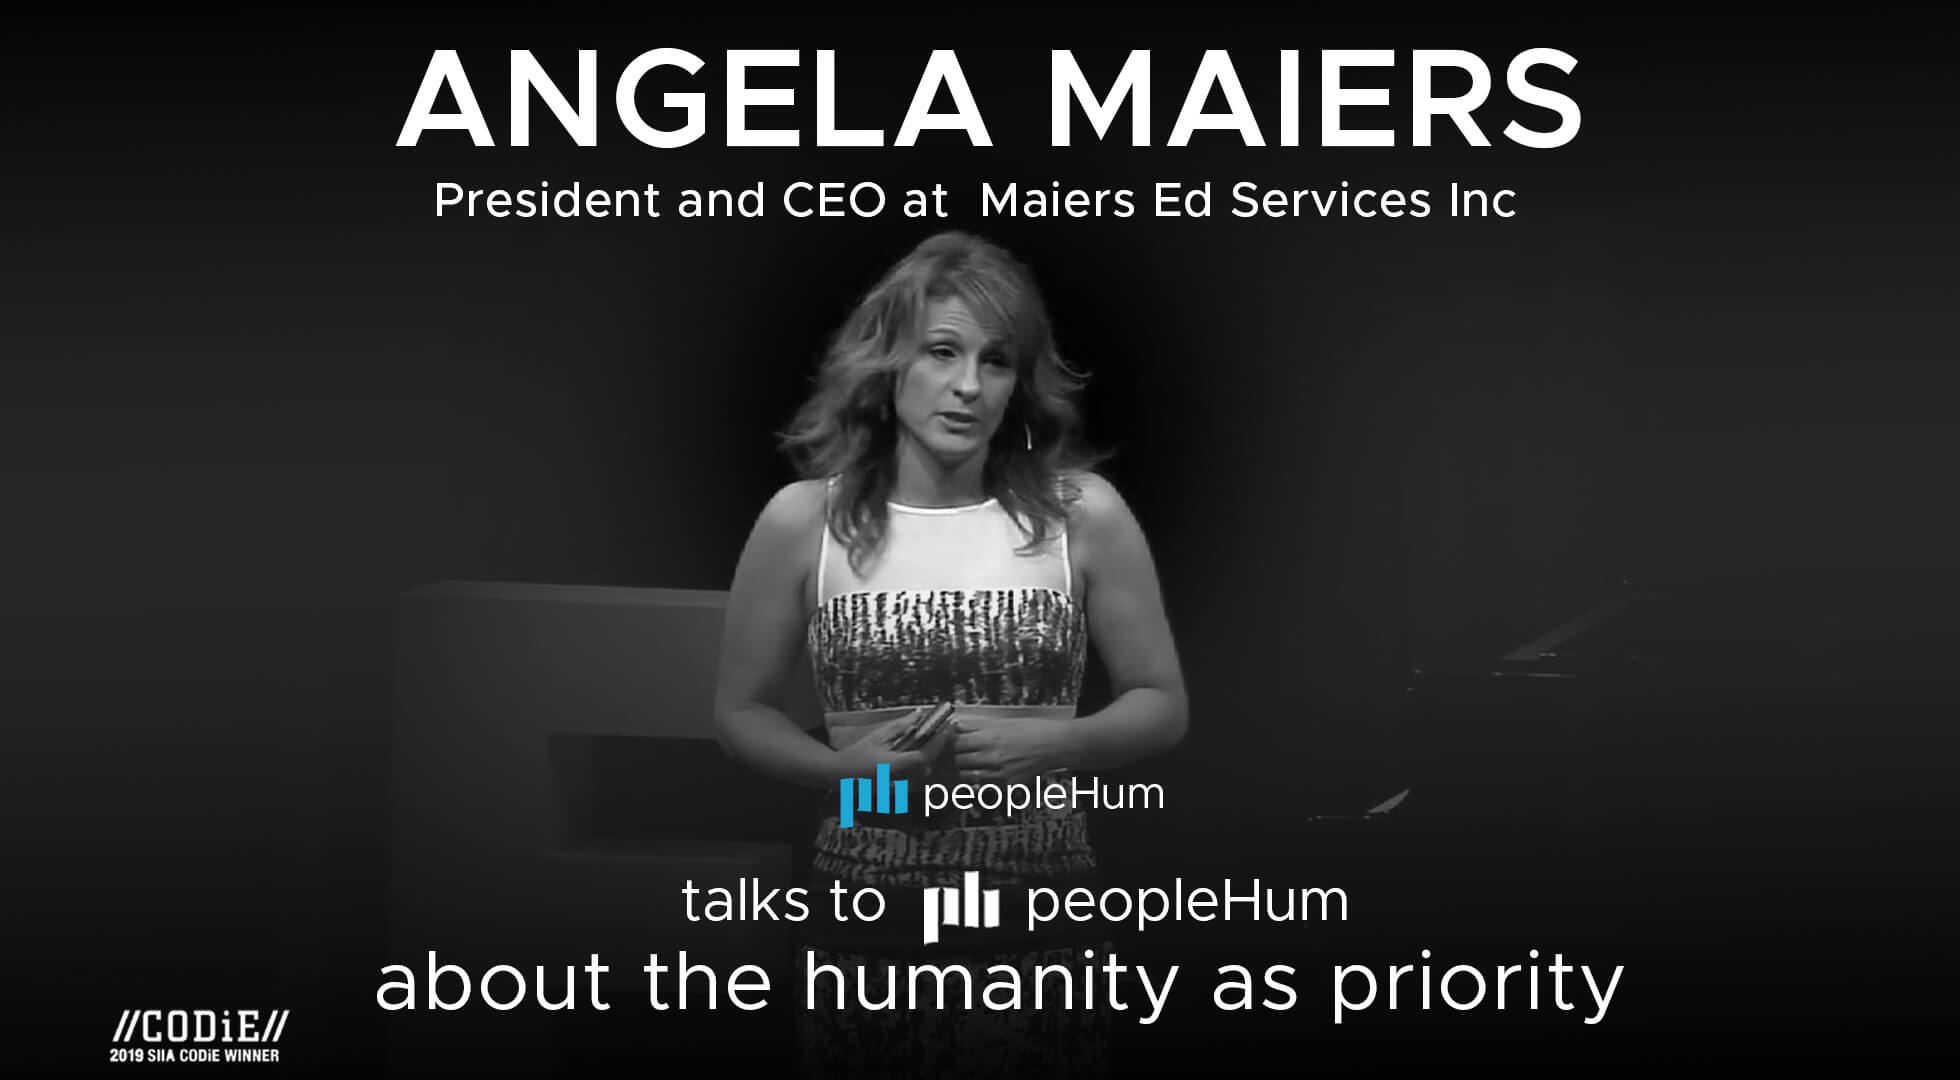 Bridging the gaps of humanity in workforce - Angela Maiers [Interview]